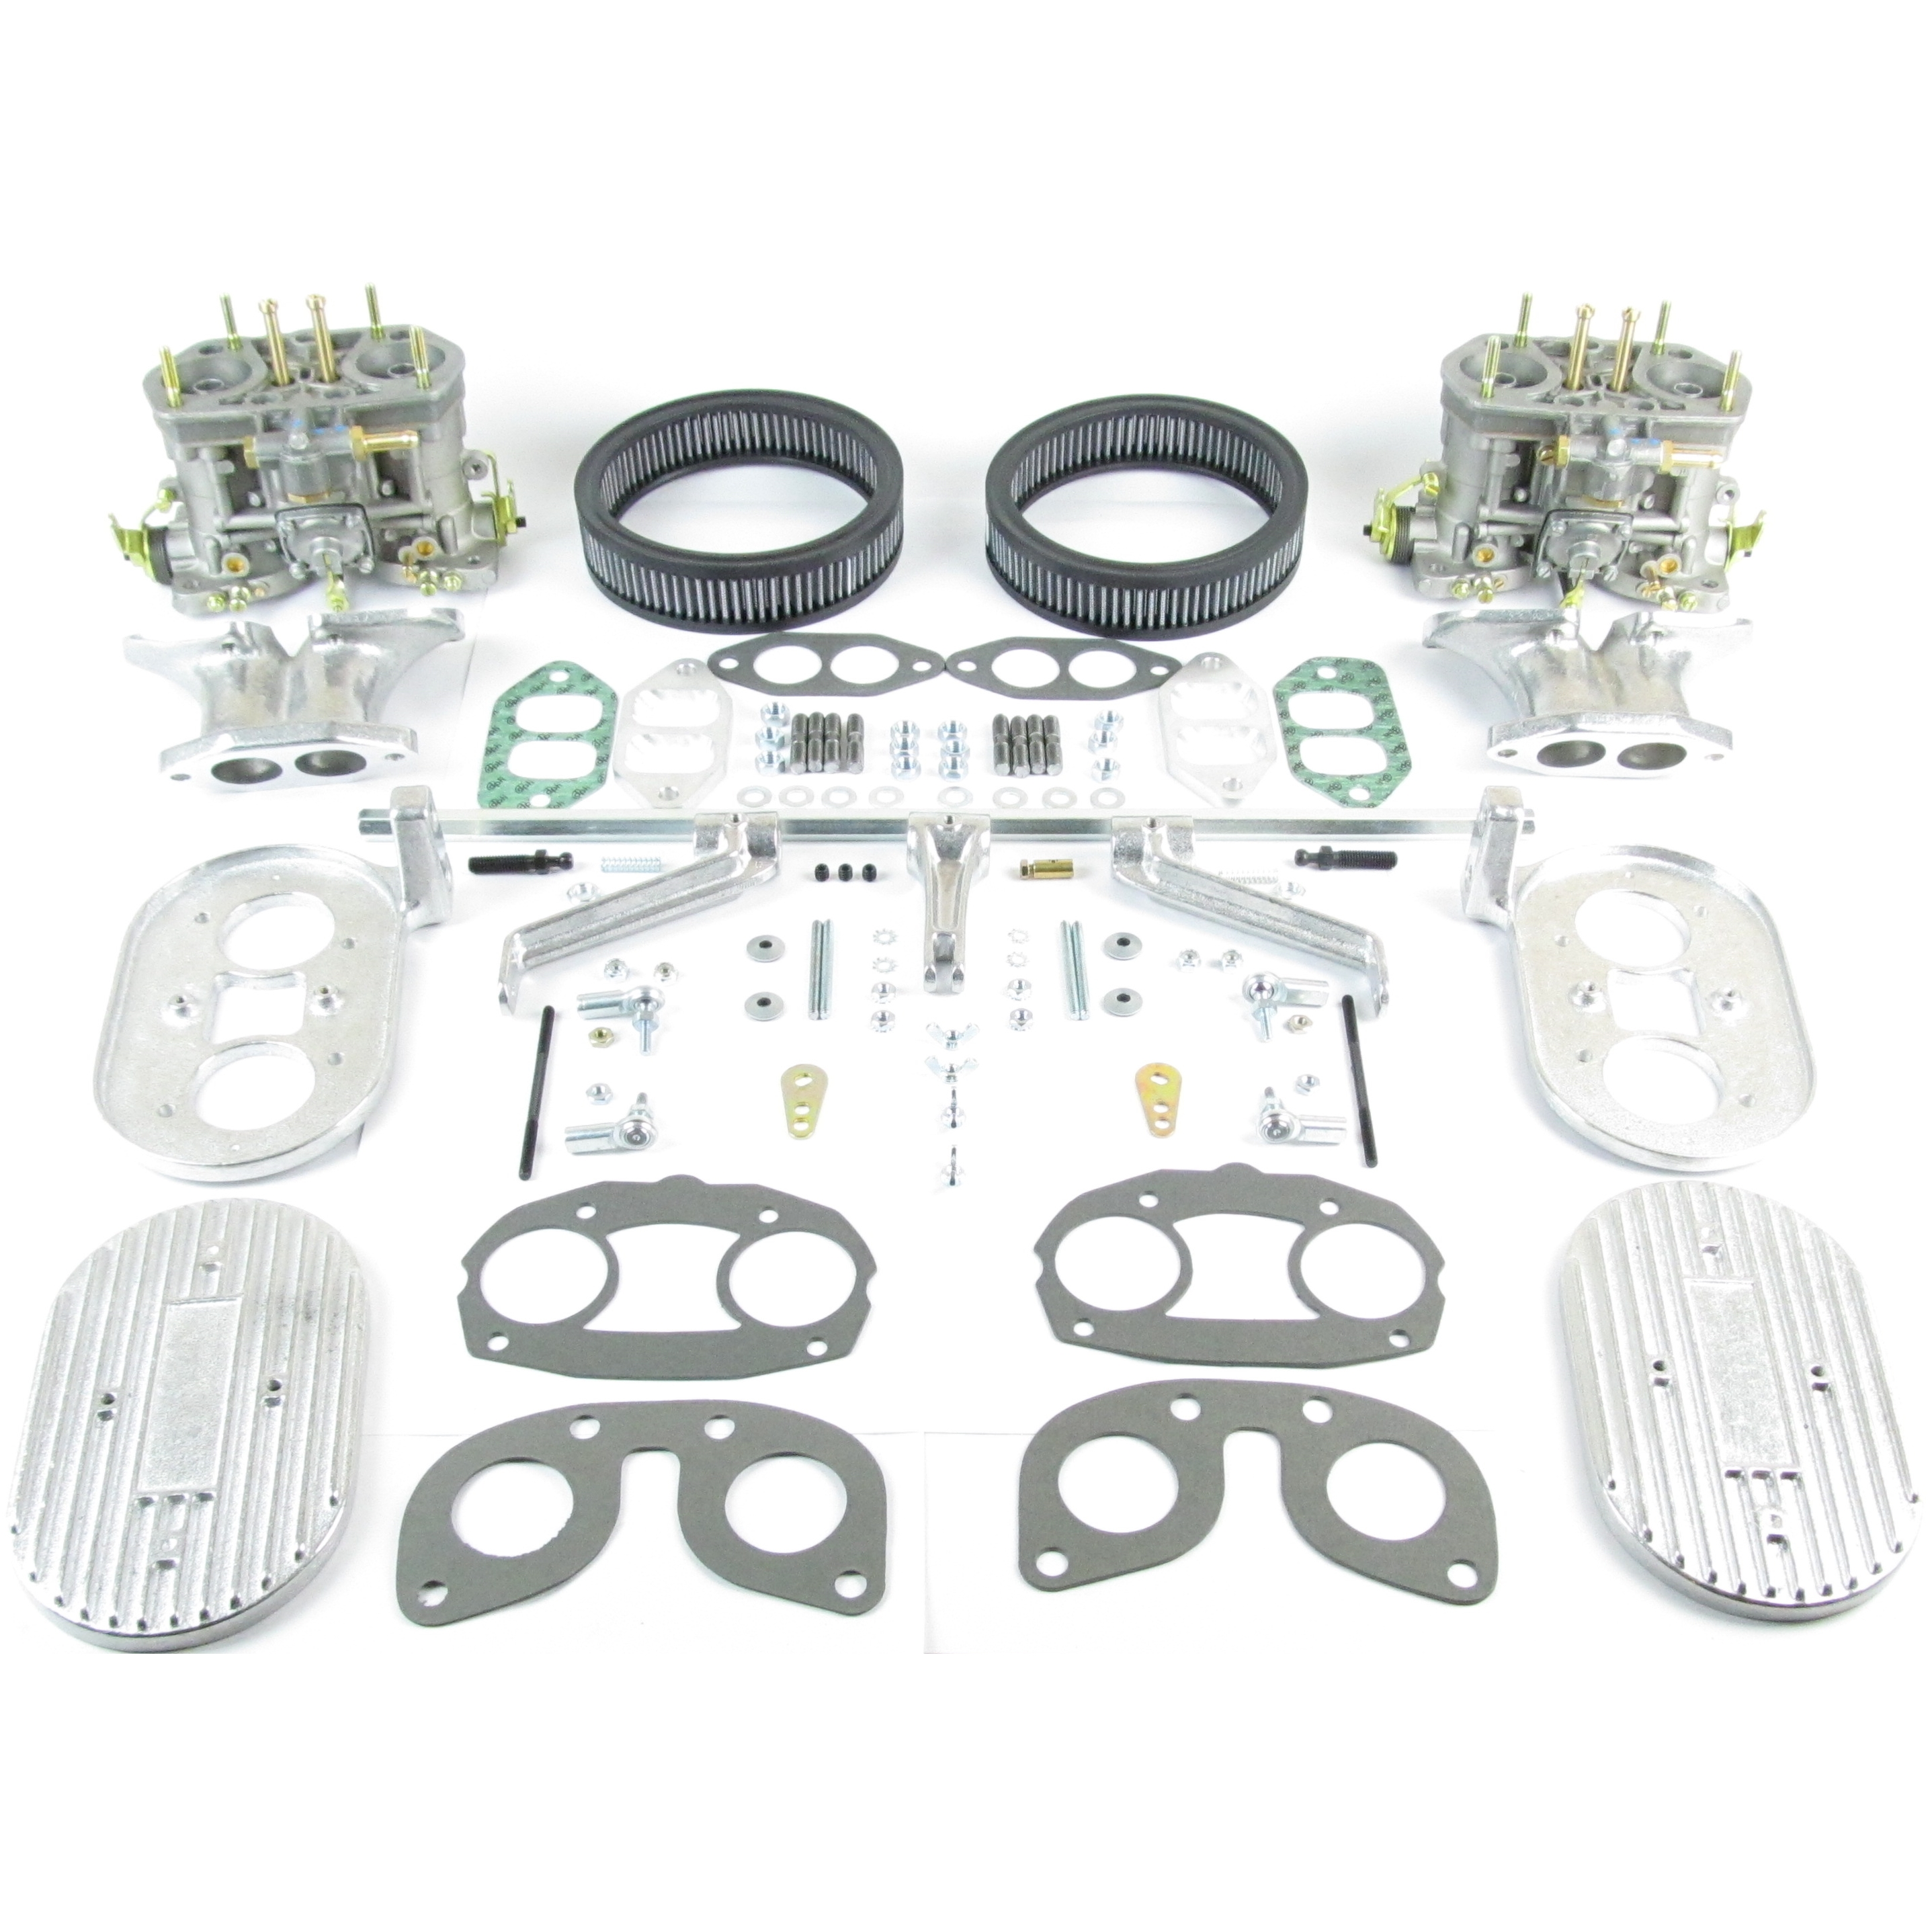 CLASSIC VESI-COOLED VW T25 KAMPAANIA / BUS TWIN WEBER IDF 40 CARBURETTOR KIT